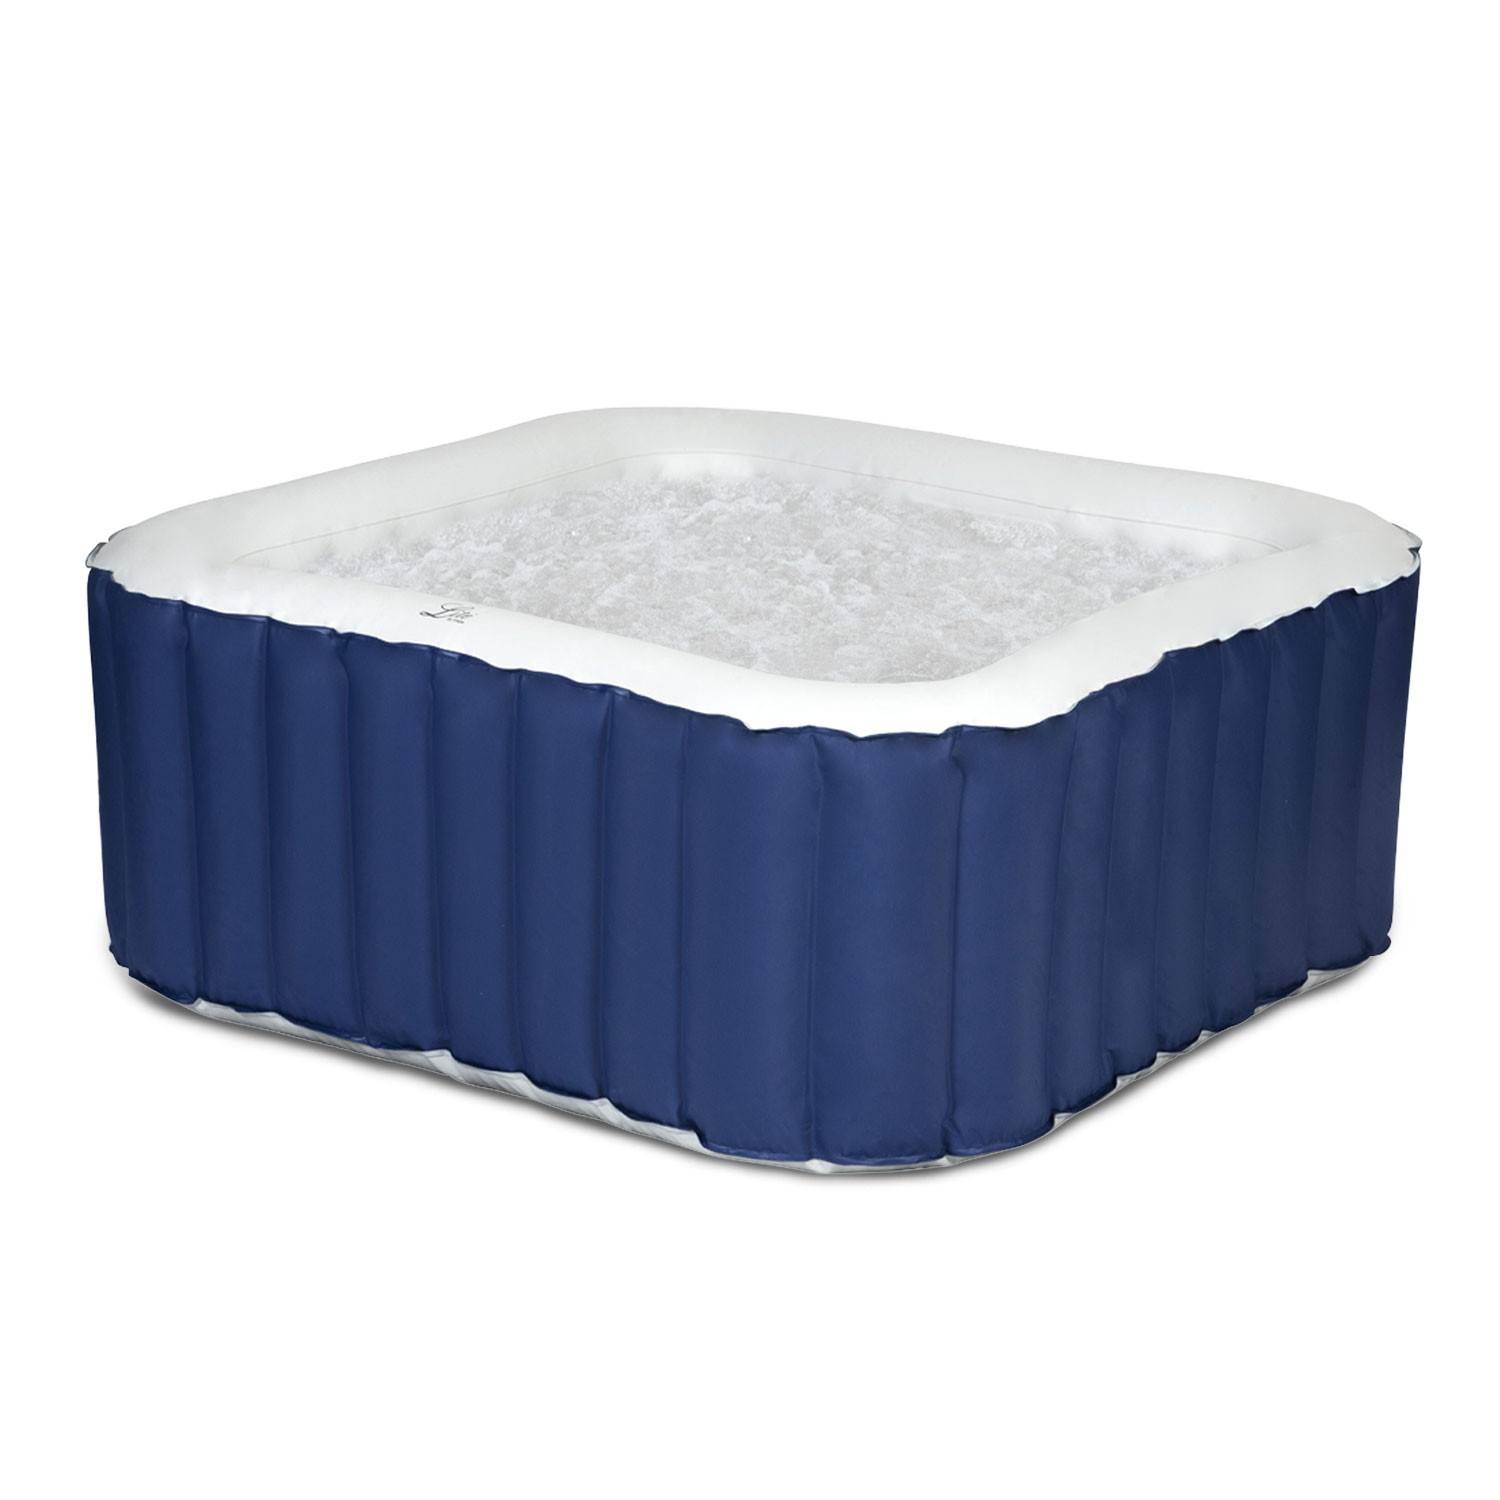 Exp via Cdiscount - LITE Spa gonflable carré 158cm - 4 places